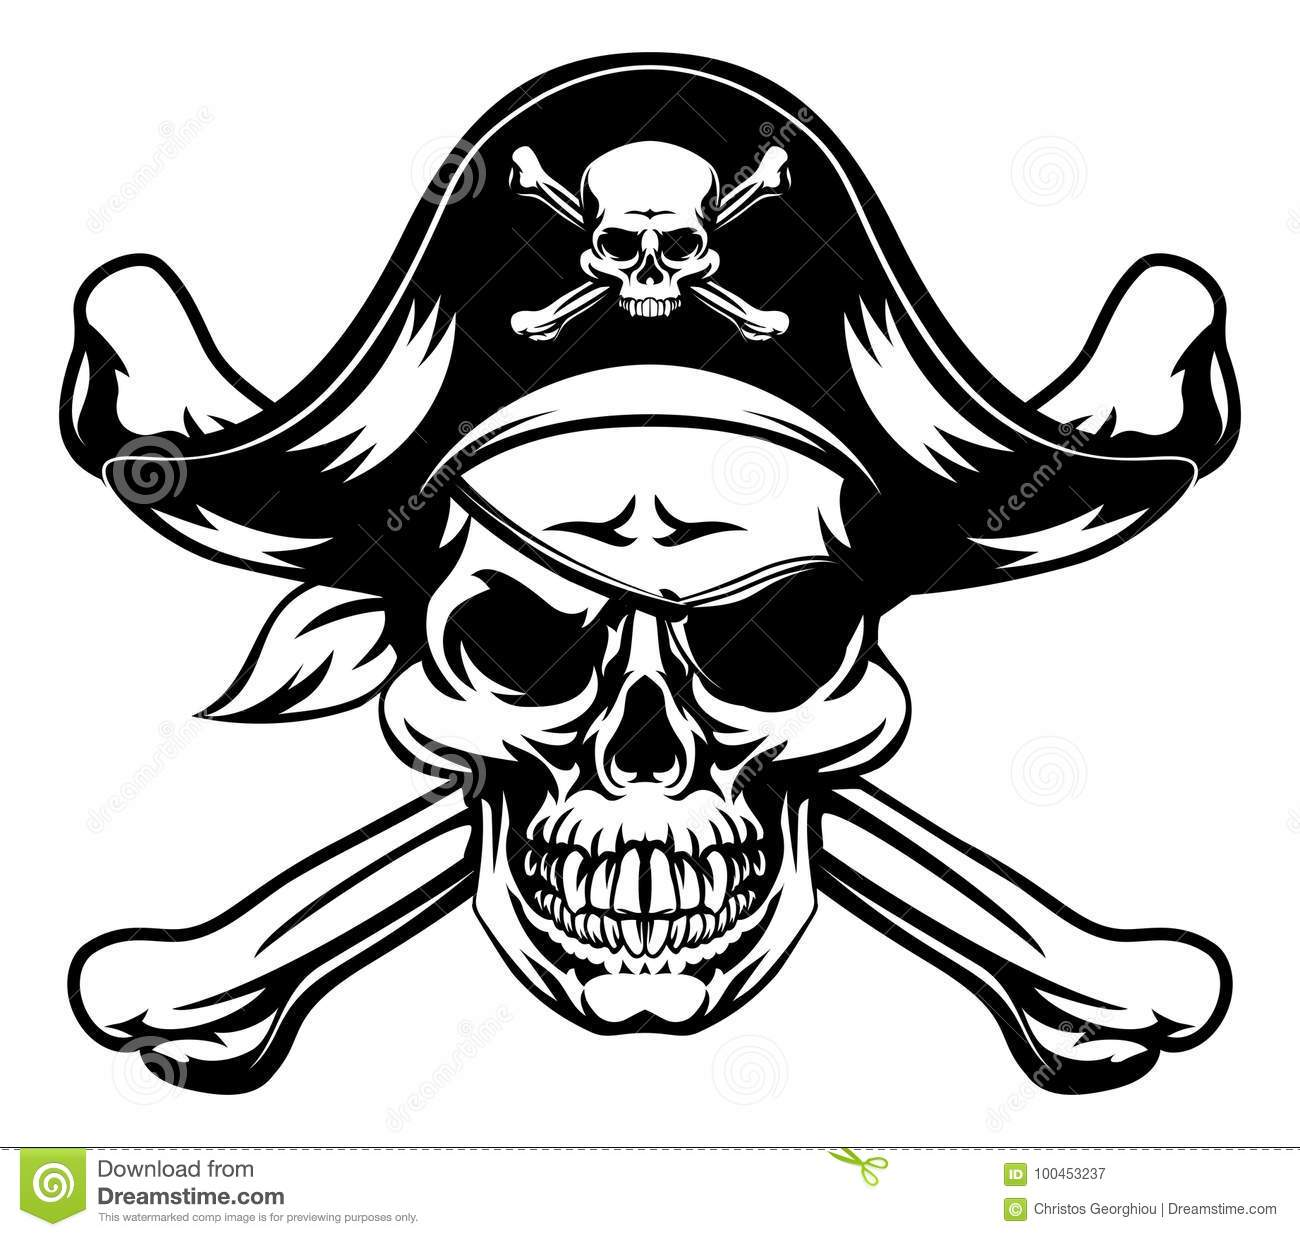 Image result for skull and crossbones